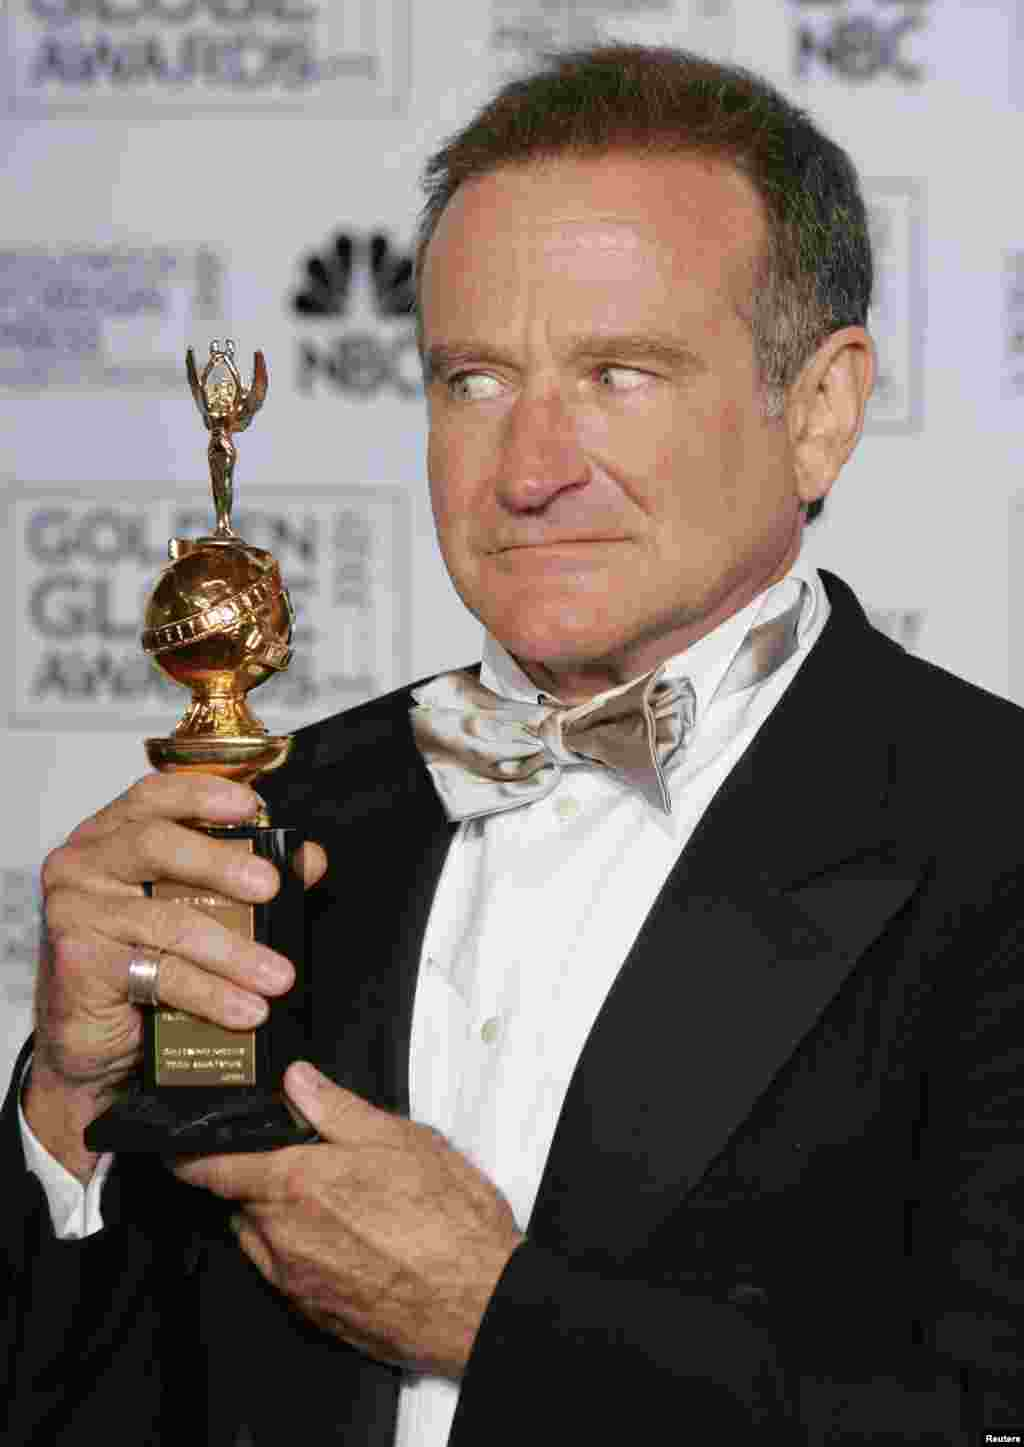 Actor/comedian Robin Williams poses back stage with the Cecil B. DeMille award he received at the 62nd annual Golden Globe Awards at the Beverly Hilton in Beverly Hills, California January 16, 2005. REUTERS/Mike Blake Pictures of the month January 2005 M